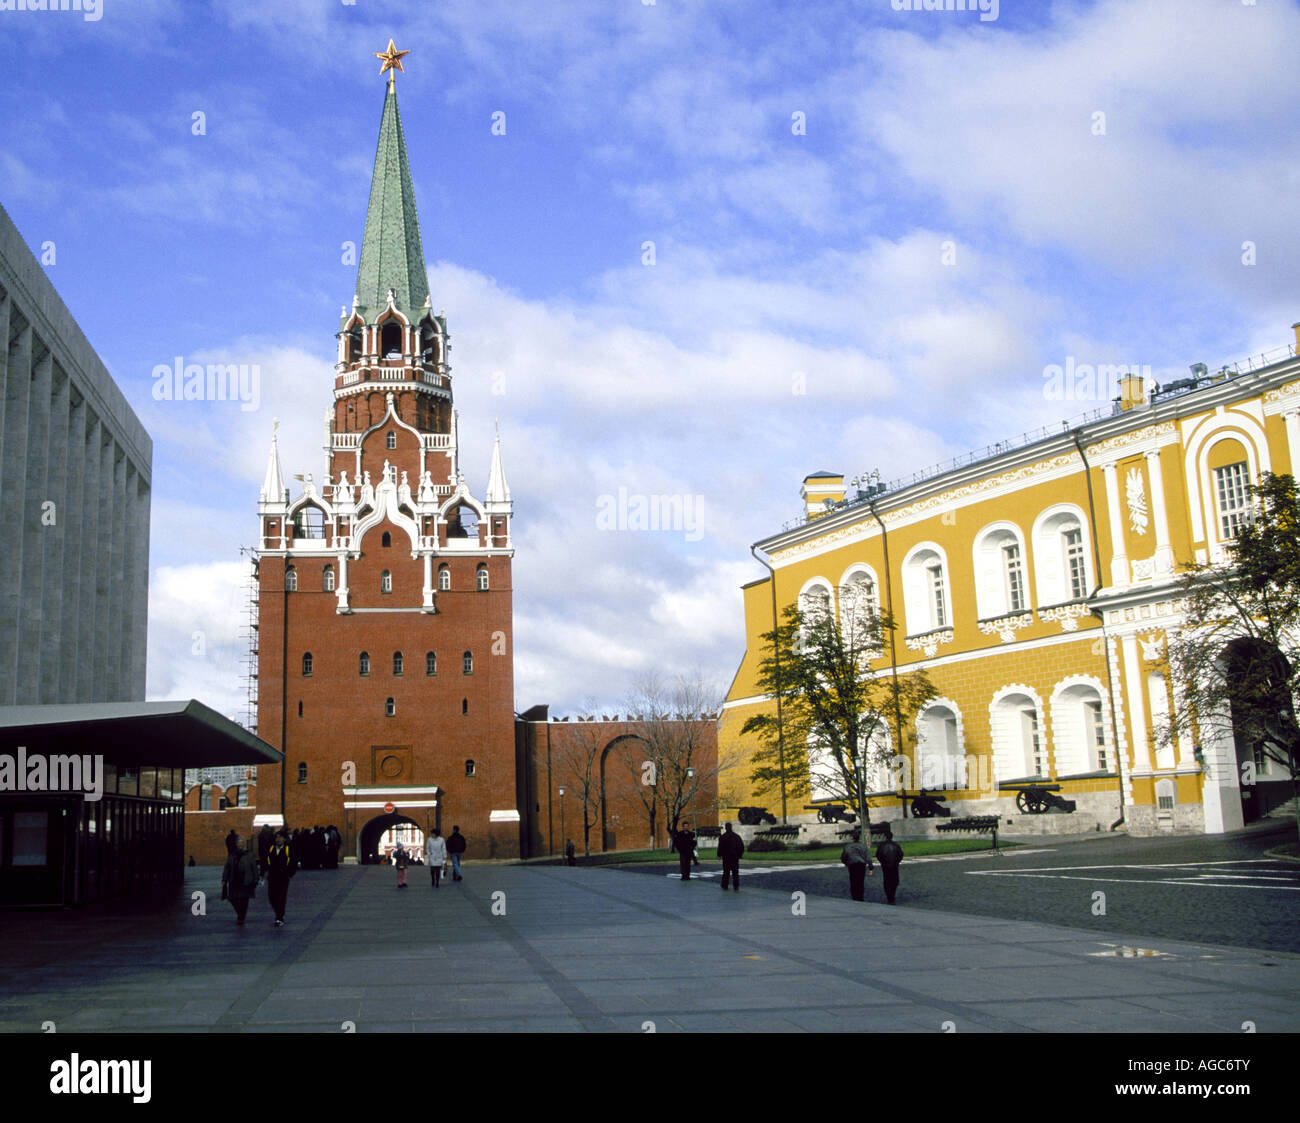 A view of one of the towers in the Kremlin on Red Square in Moscow - Stock Image